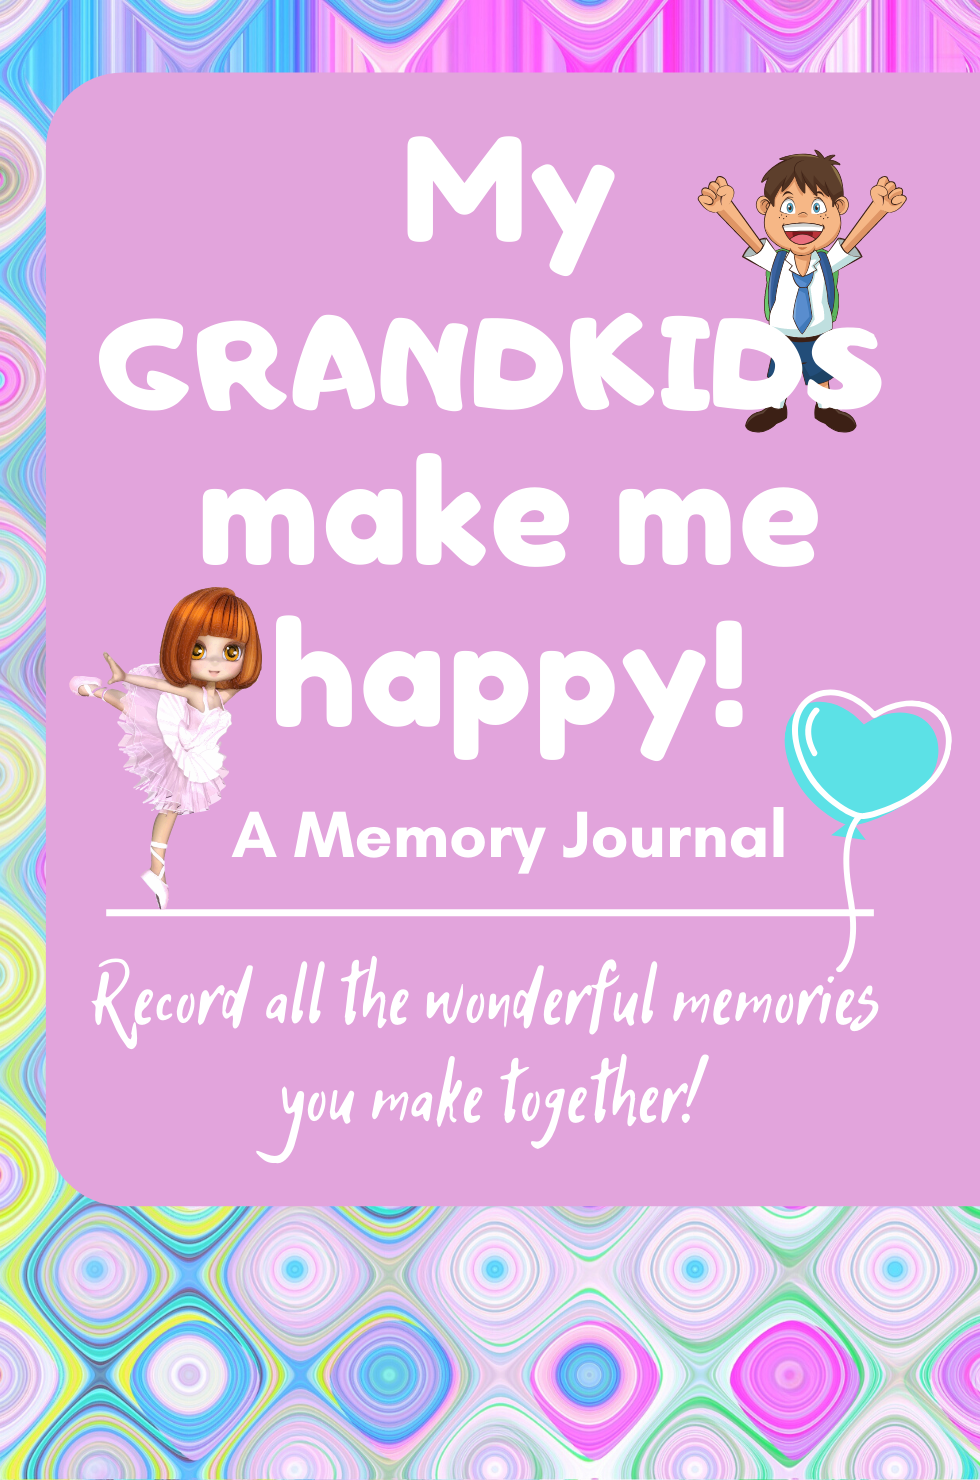 My Grandkids Make Me Happy! A Memory Journal